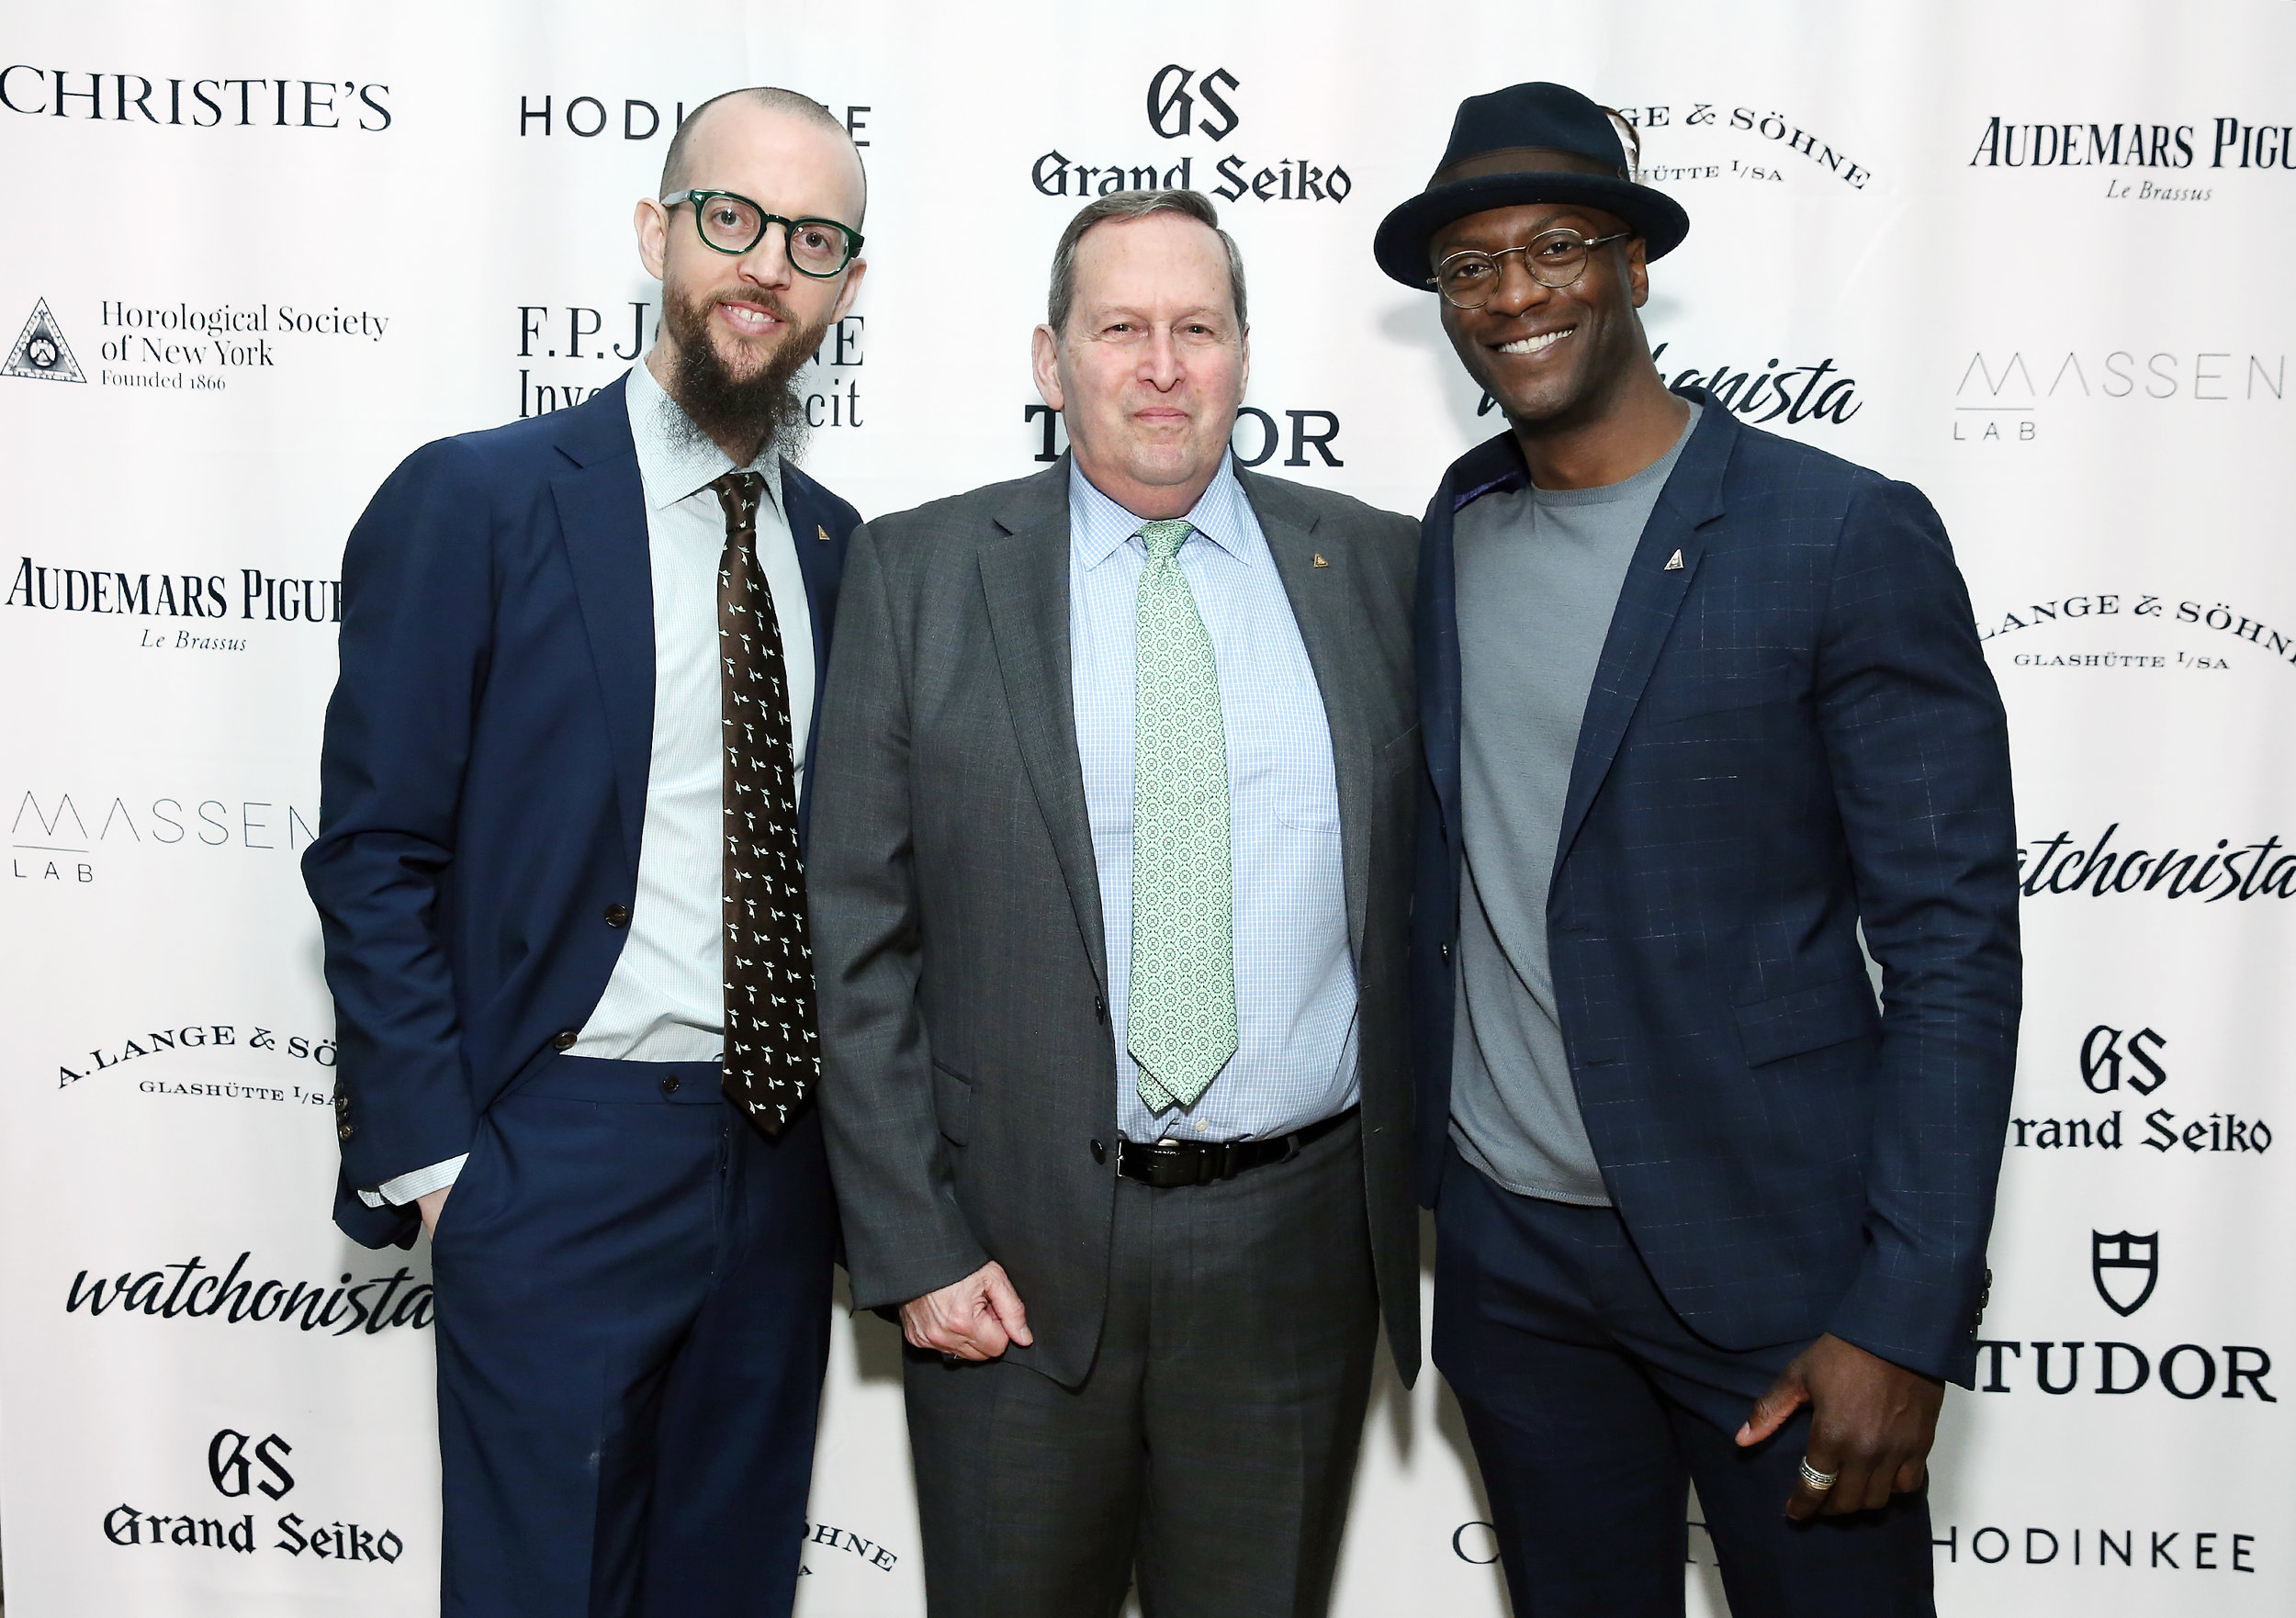 (L-R) HSNY President Nicholas Manousos, HSNY Executive Director Edwin M. Hydeman and Aldis Hodge attend the      2019 Gala & Charity Auction     .